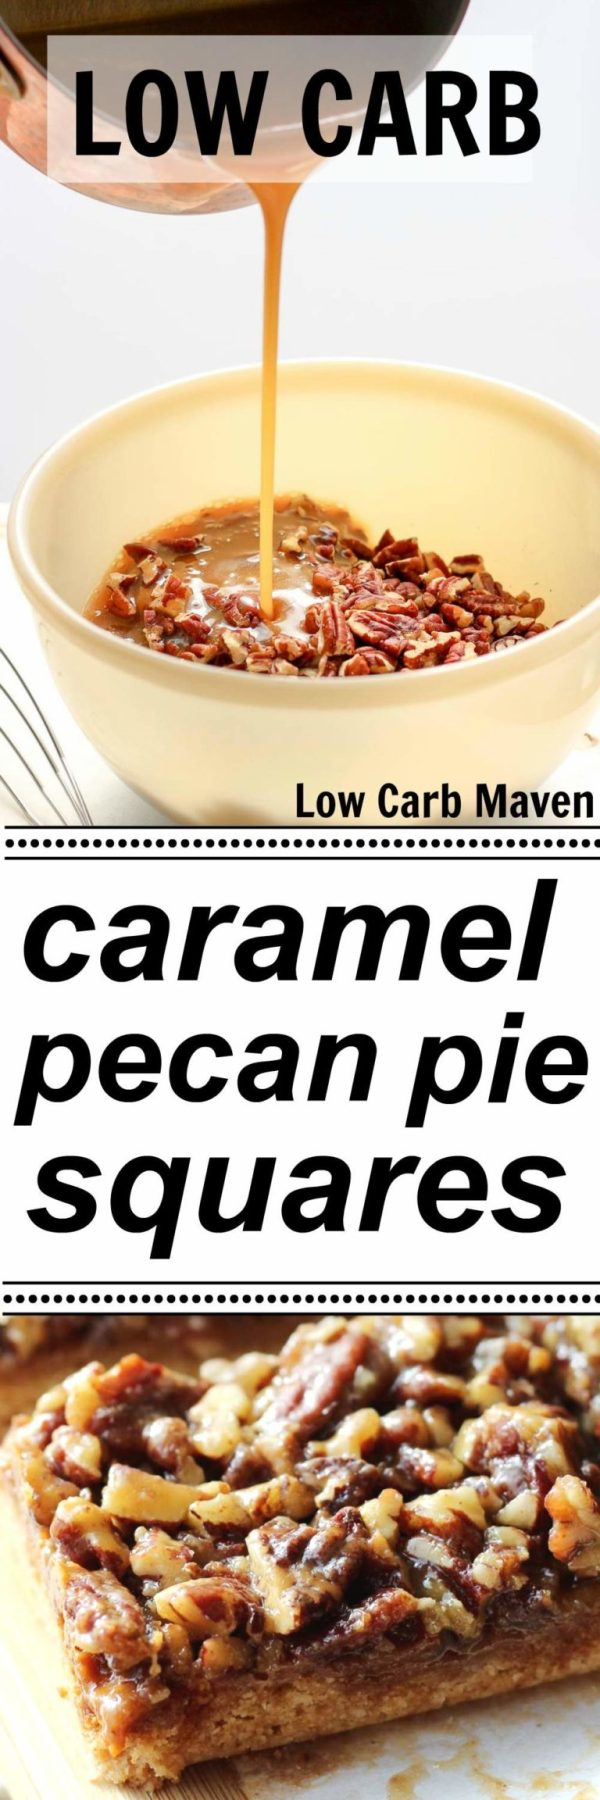 Low Carb Caramel Pecan Pie Squares are sugar free, gluten free and ...